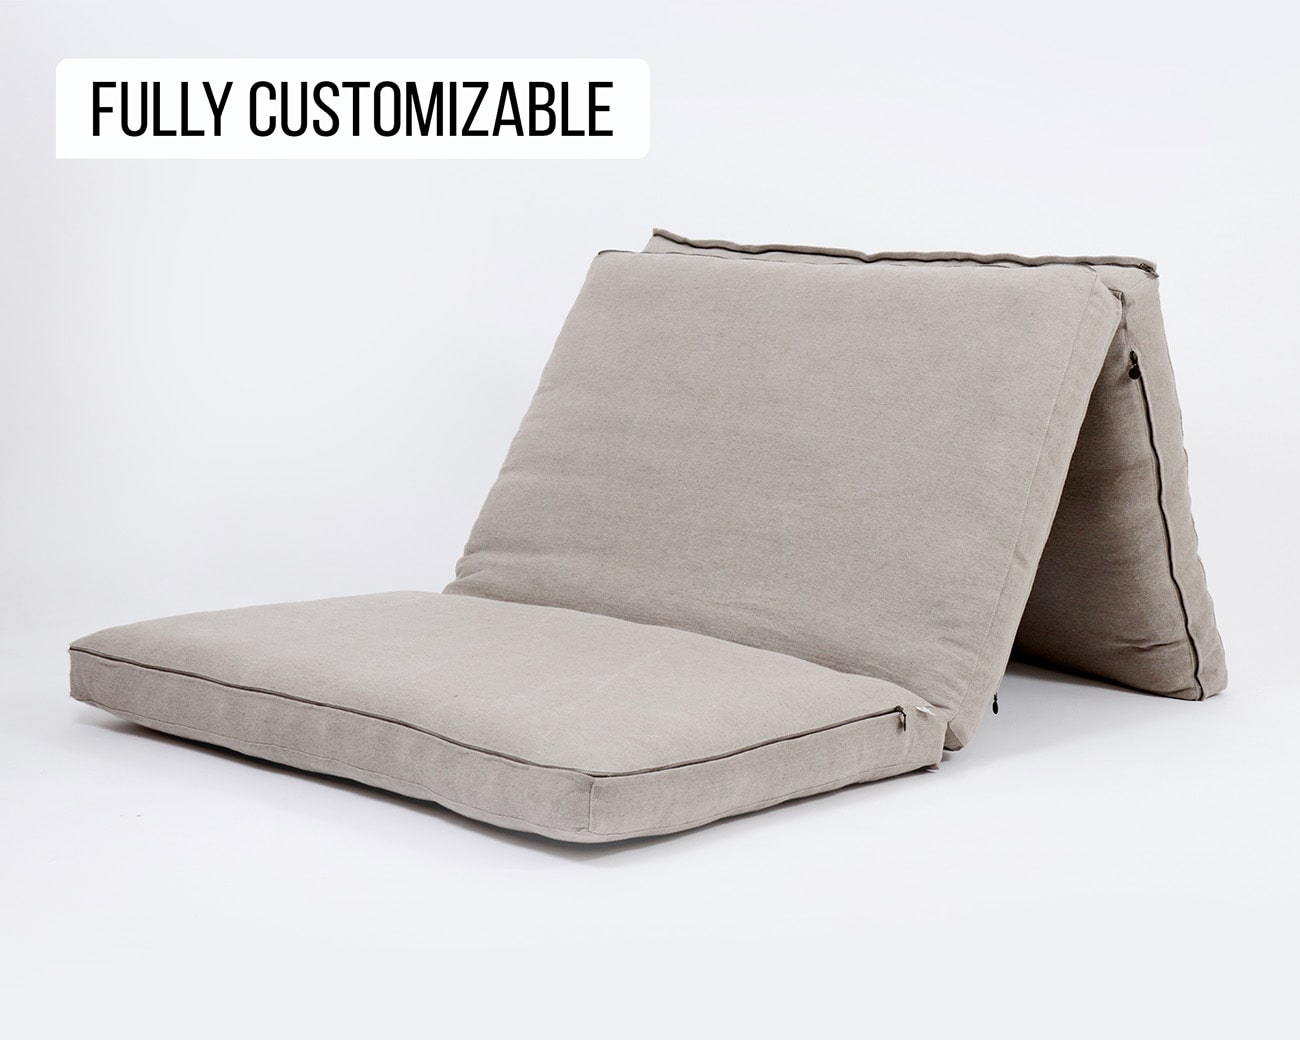 Excitement About Foldable Mattress